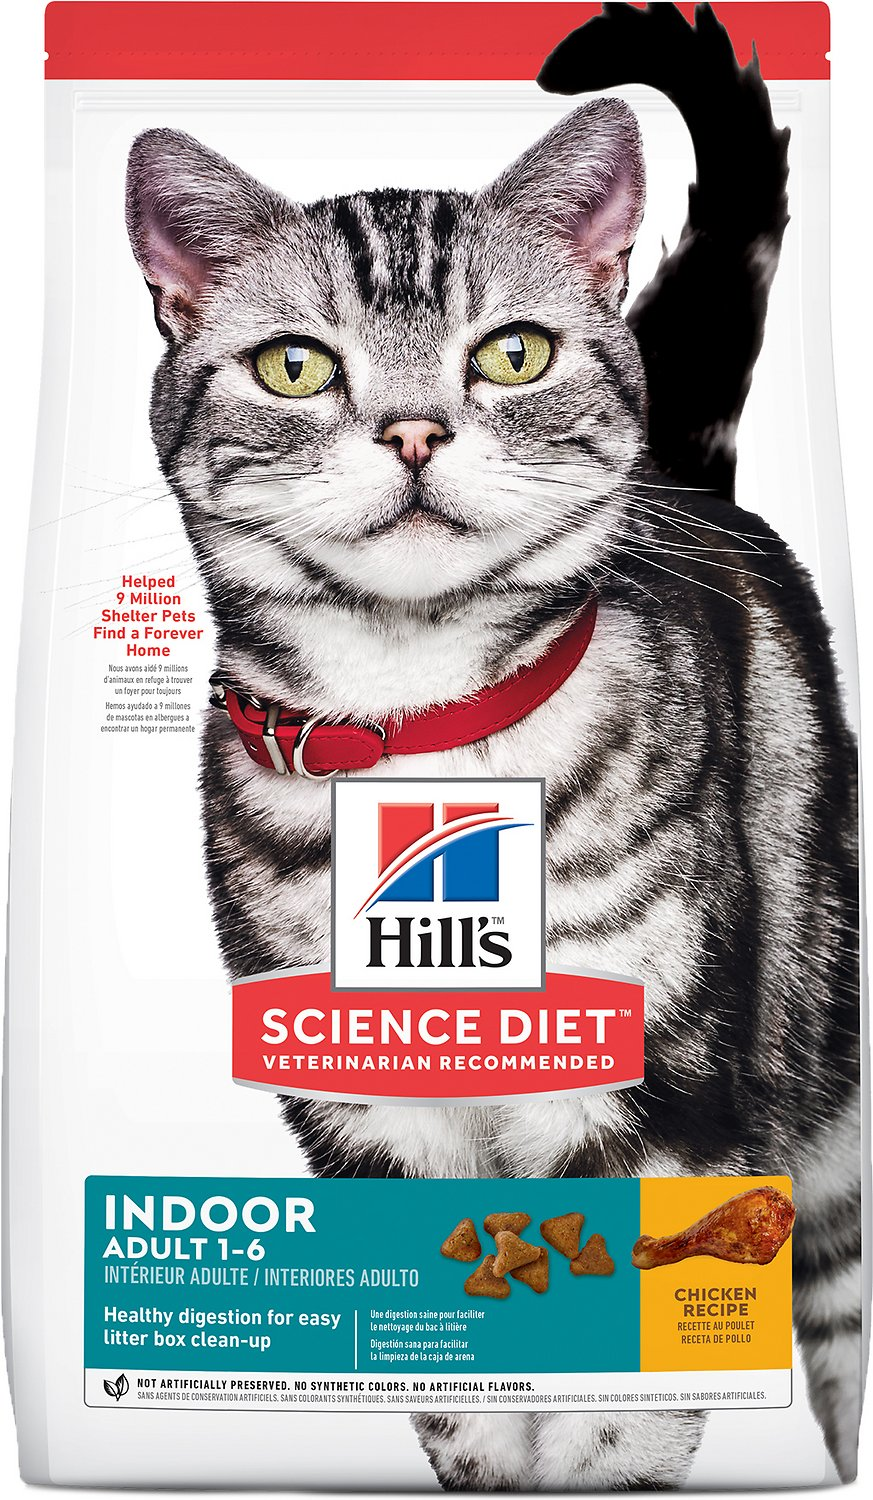 fed hill science cat diet food